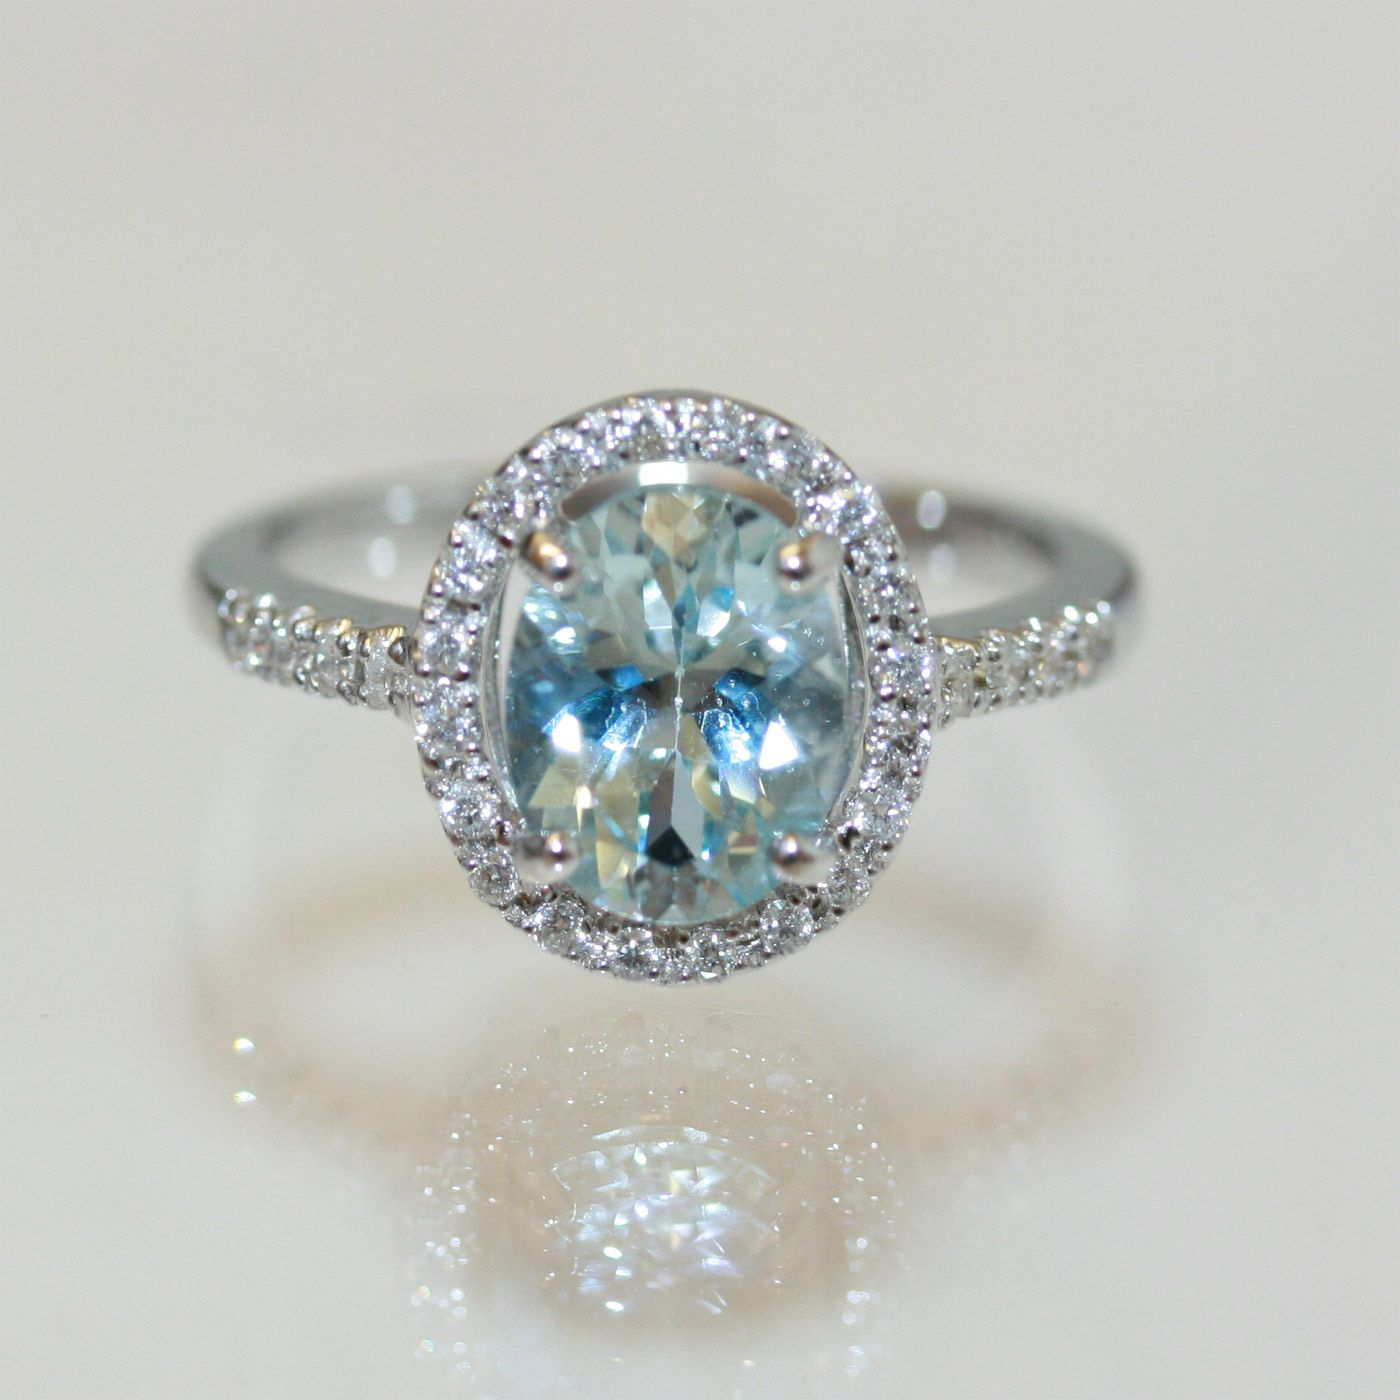 Aquamarine rings buy 18ct aquamarine and diamond ring for Wedding rings aquamarine